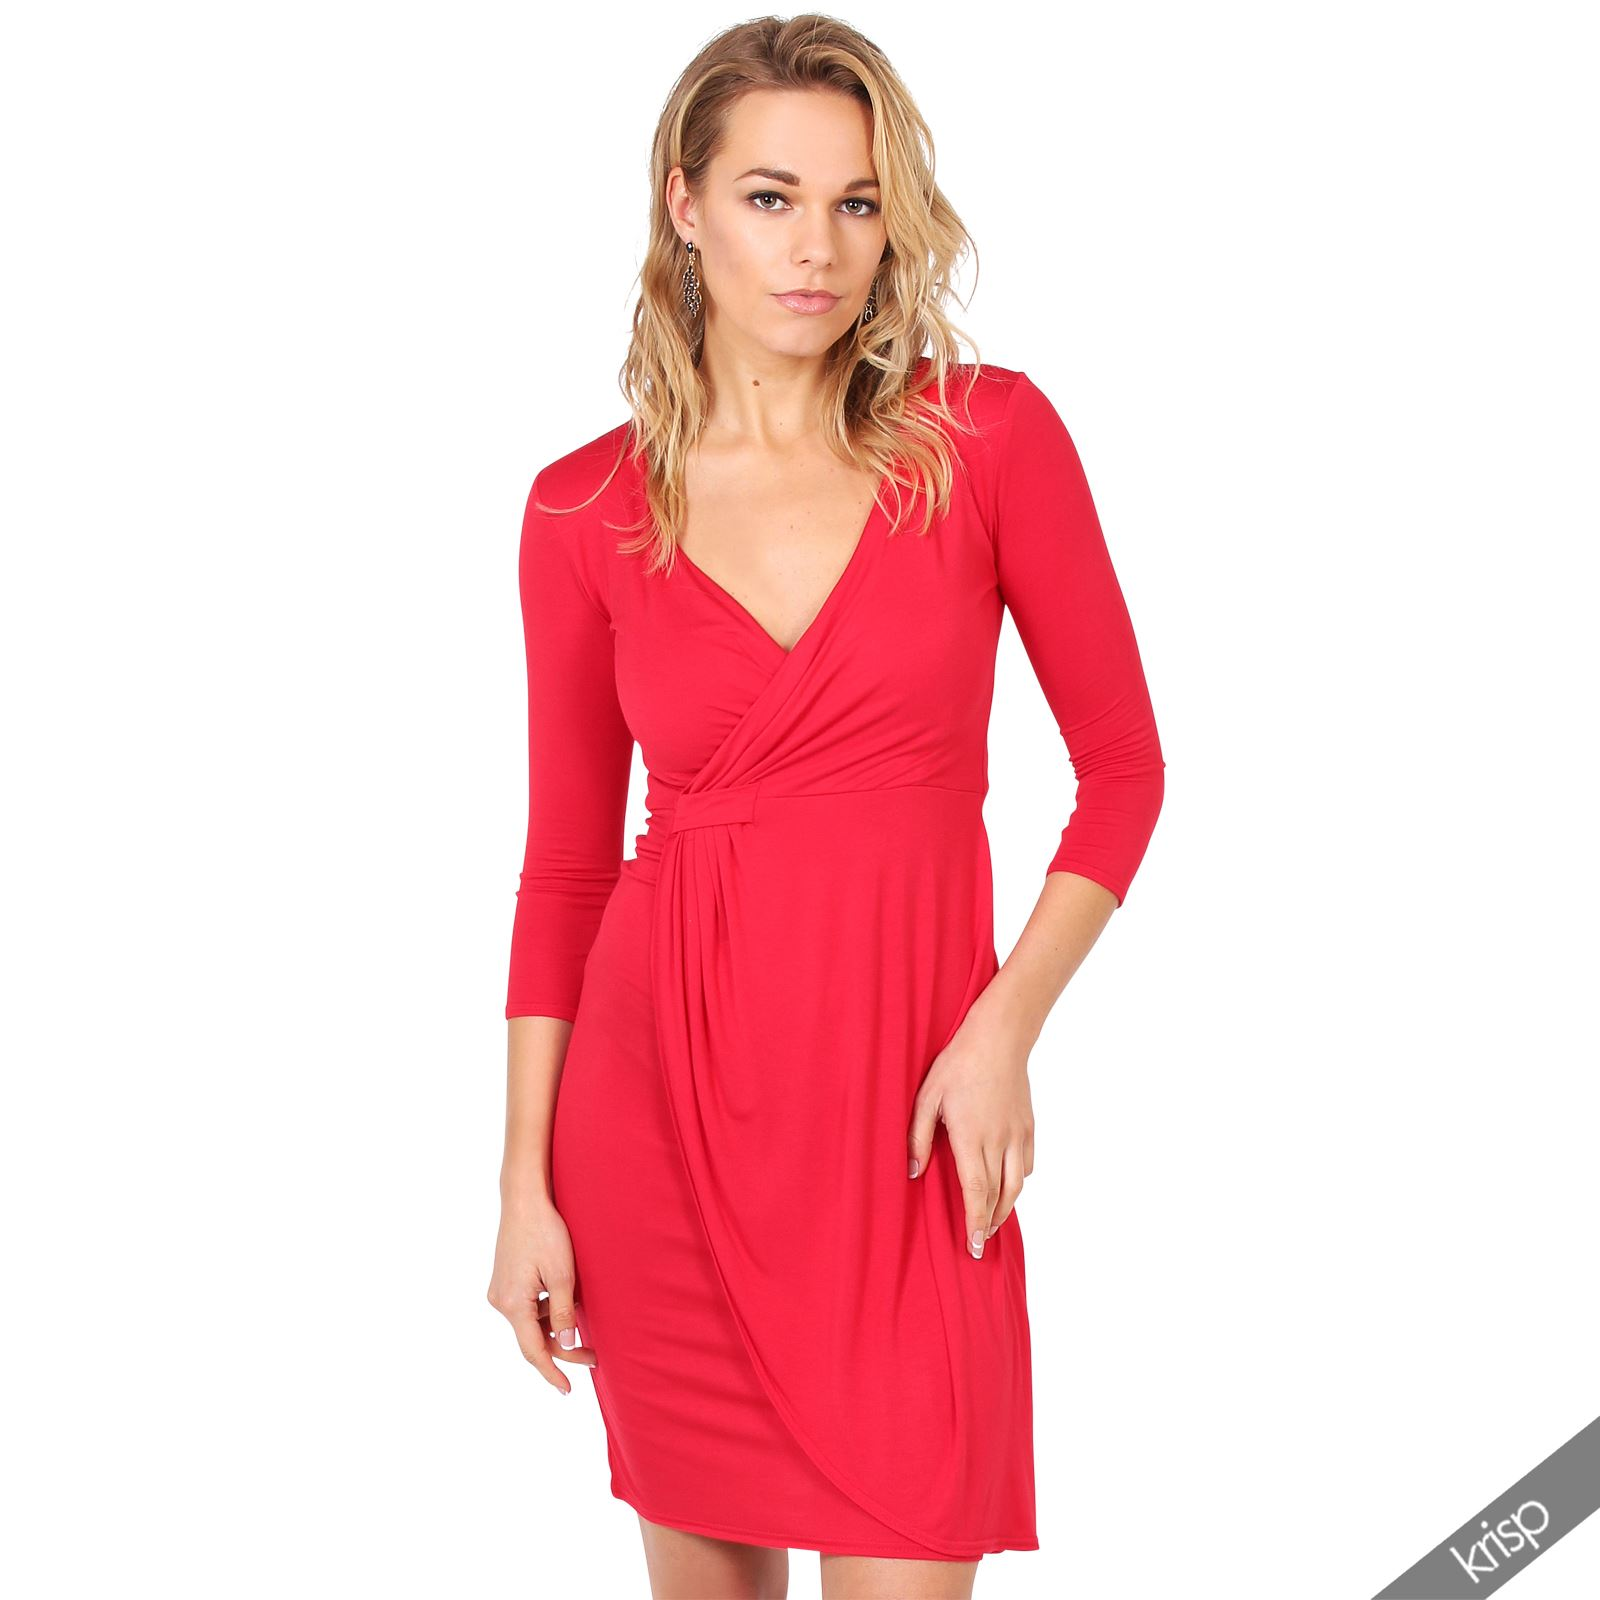 The perfect Red Evening Tops Women provided on LightInTheBox will satisfy all your desires. Shop it on our online store. custifara.ga is the best online shop for all products ranging from cell phones, cameras, home hardware, fashion clothes, dresses and more!